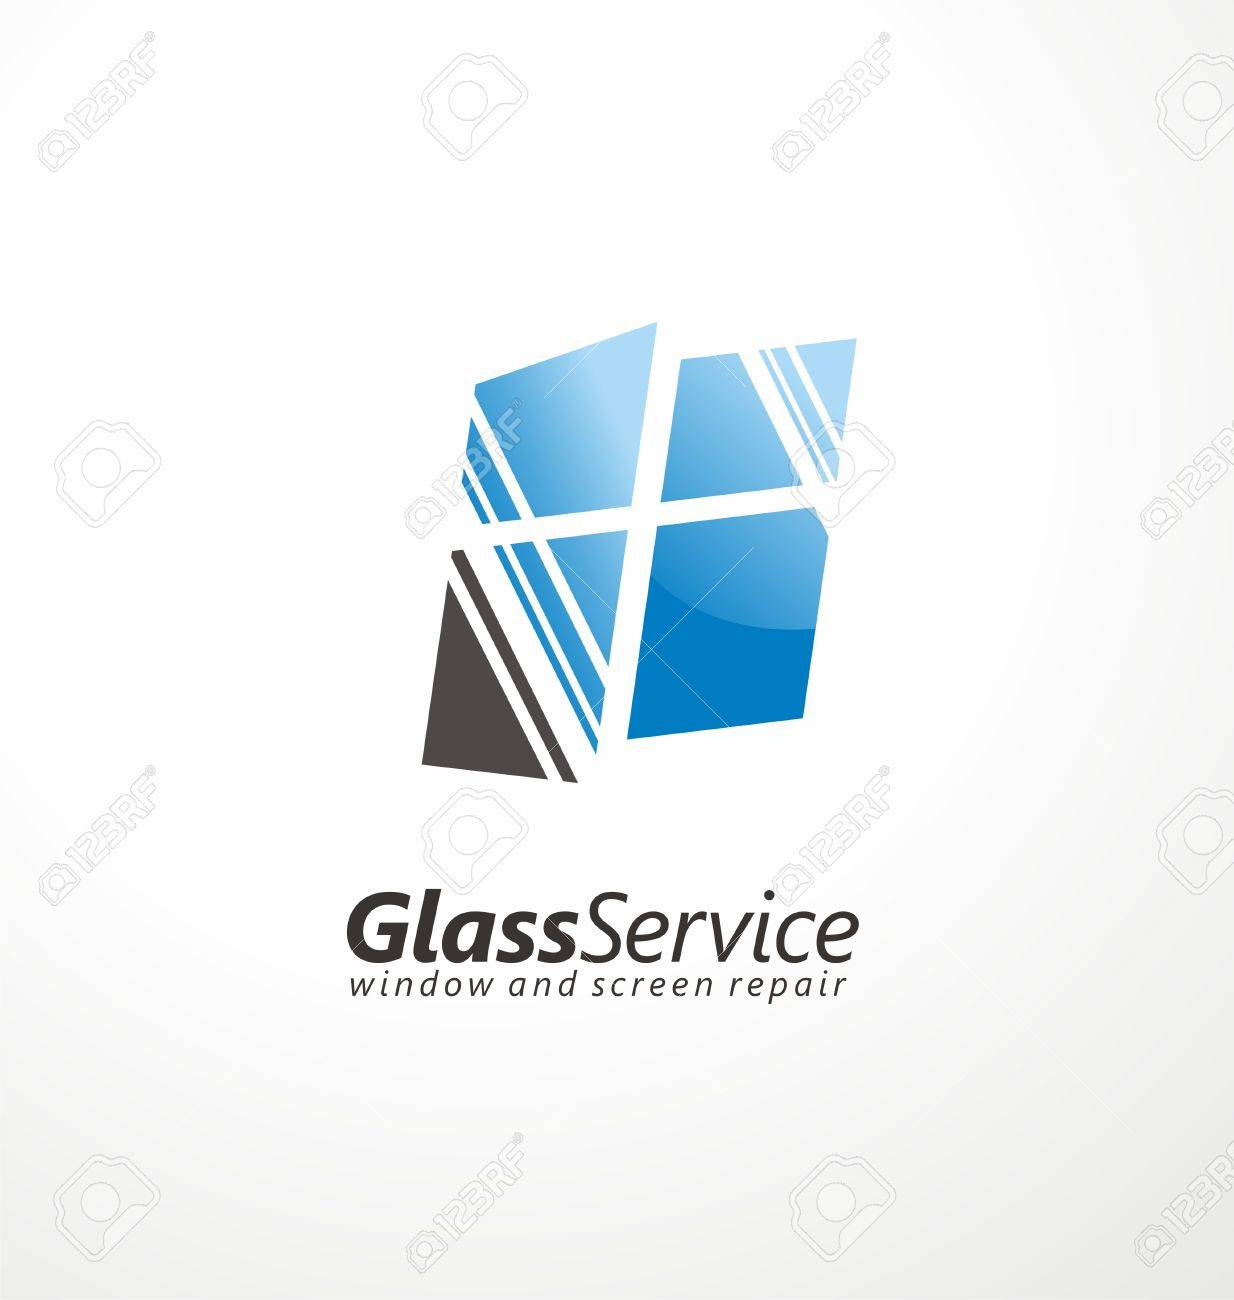 de131f76f20 Glass service symbol layout Stock Vector - 50937537